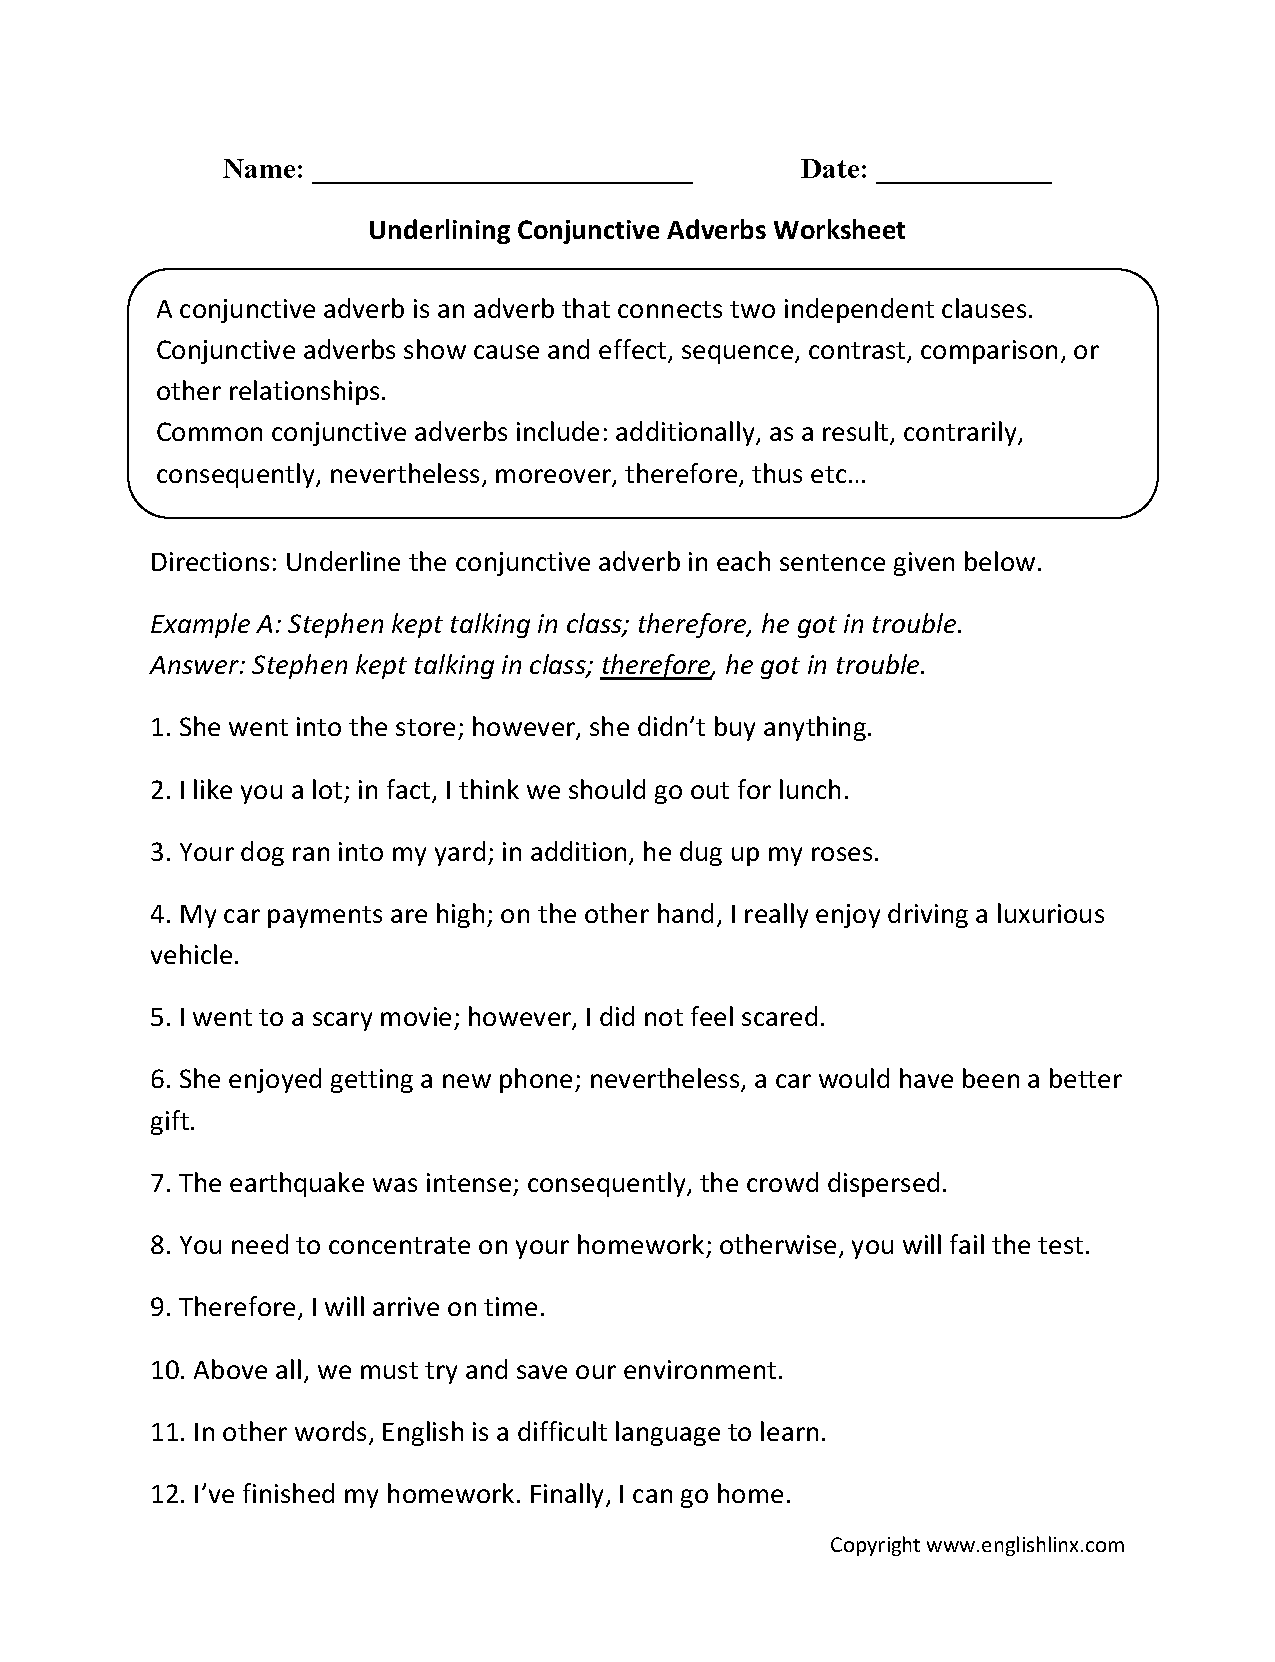 Weirdmailus  Stunning Englishlinxcom  Conjunctions Worksheets With Lovable Worksheet With Enchanting Valentine Math Worksheets First Grade Also Simple Division Worksheets Ks In Addition Free Year  Maths Worksheets And Worksheets On Place Value For Grade  As Well As Worksheet On Multiplication Additionally Story Writing Worksheets For Grade  From Englishlinxcom With Weirdmailus  Lovable Englishlinxcom  Conjunctions Worksheets With Enchanting Worksheet And Stunning Valentine Math Worksheets First Grade Also Simple Division Worksheets Ks In Addition Free Year  Maths Worksheets From Englishlinxcom